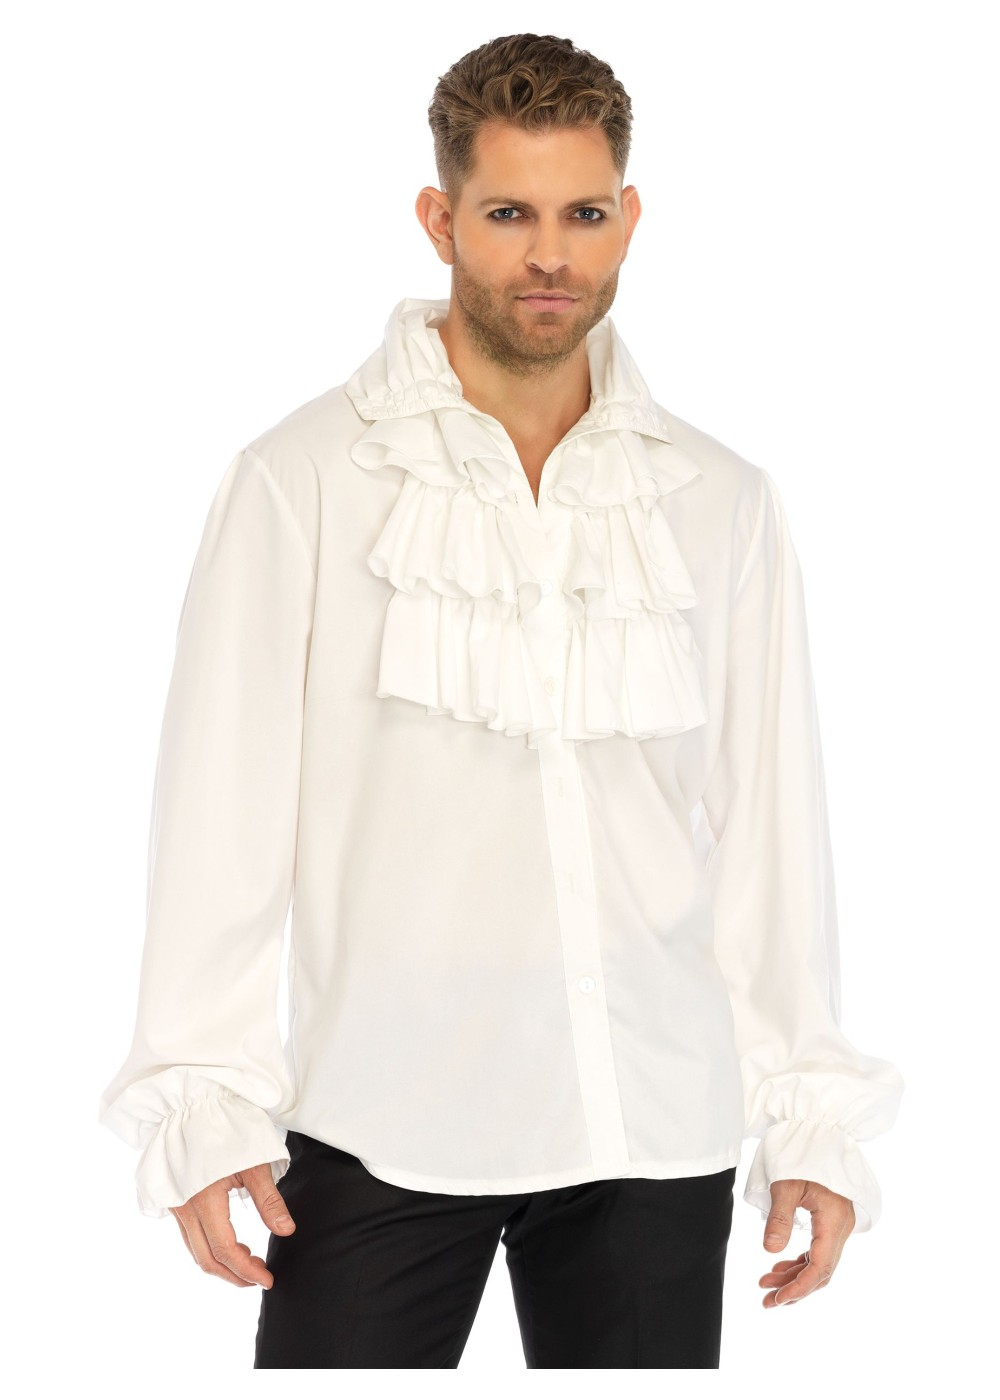 White ruffled men shirt renaissance costumes for Frilly shirts for men